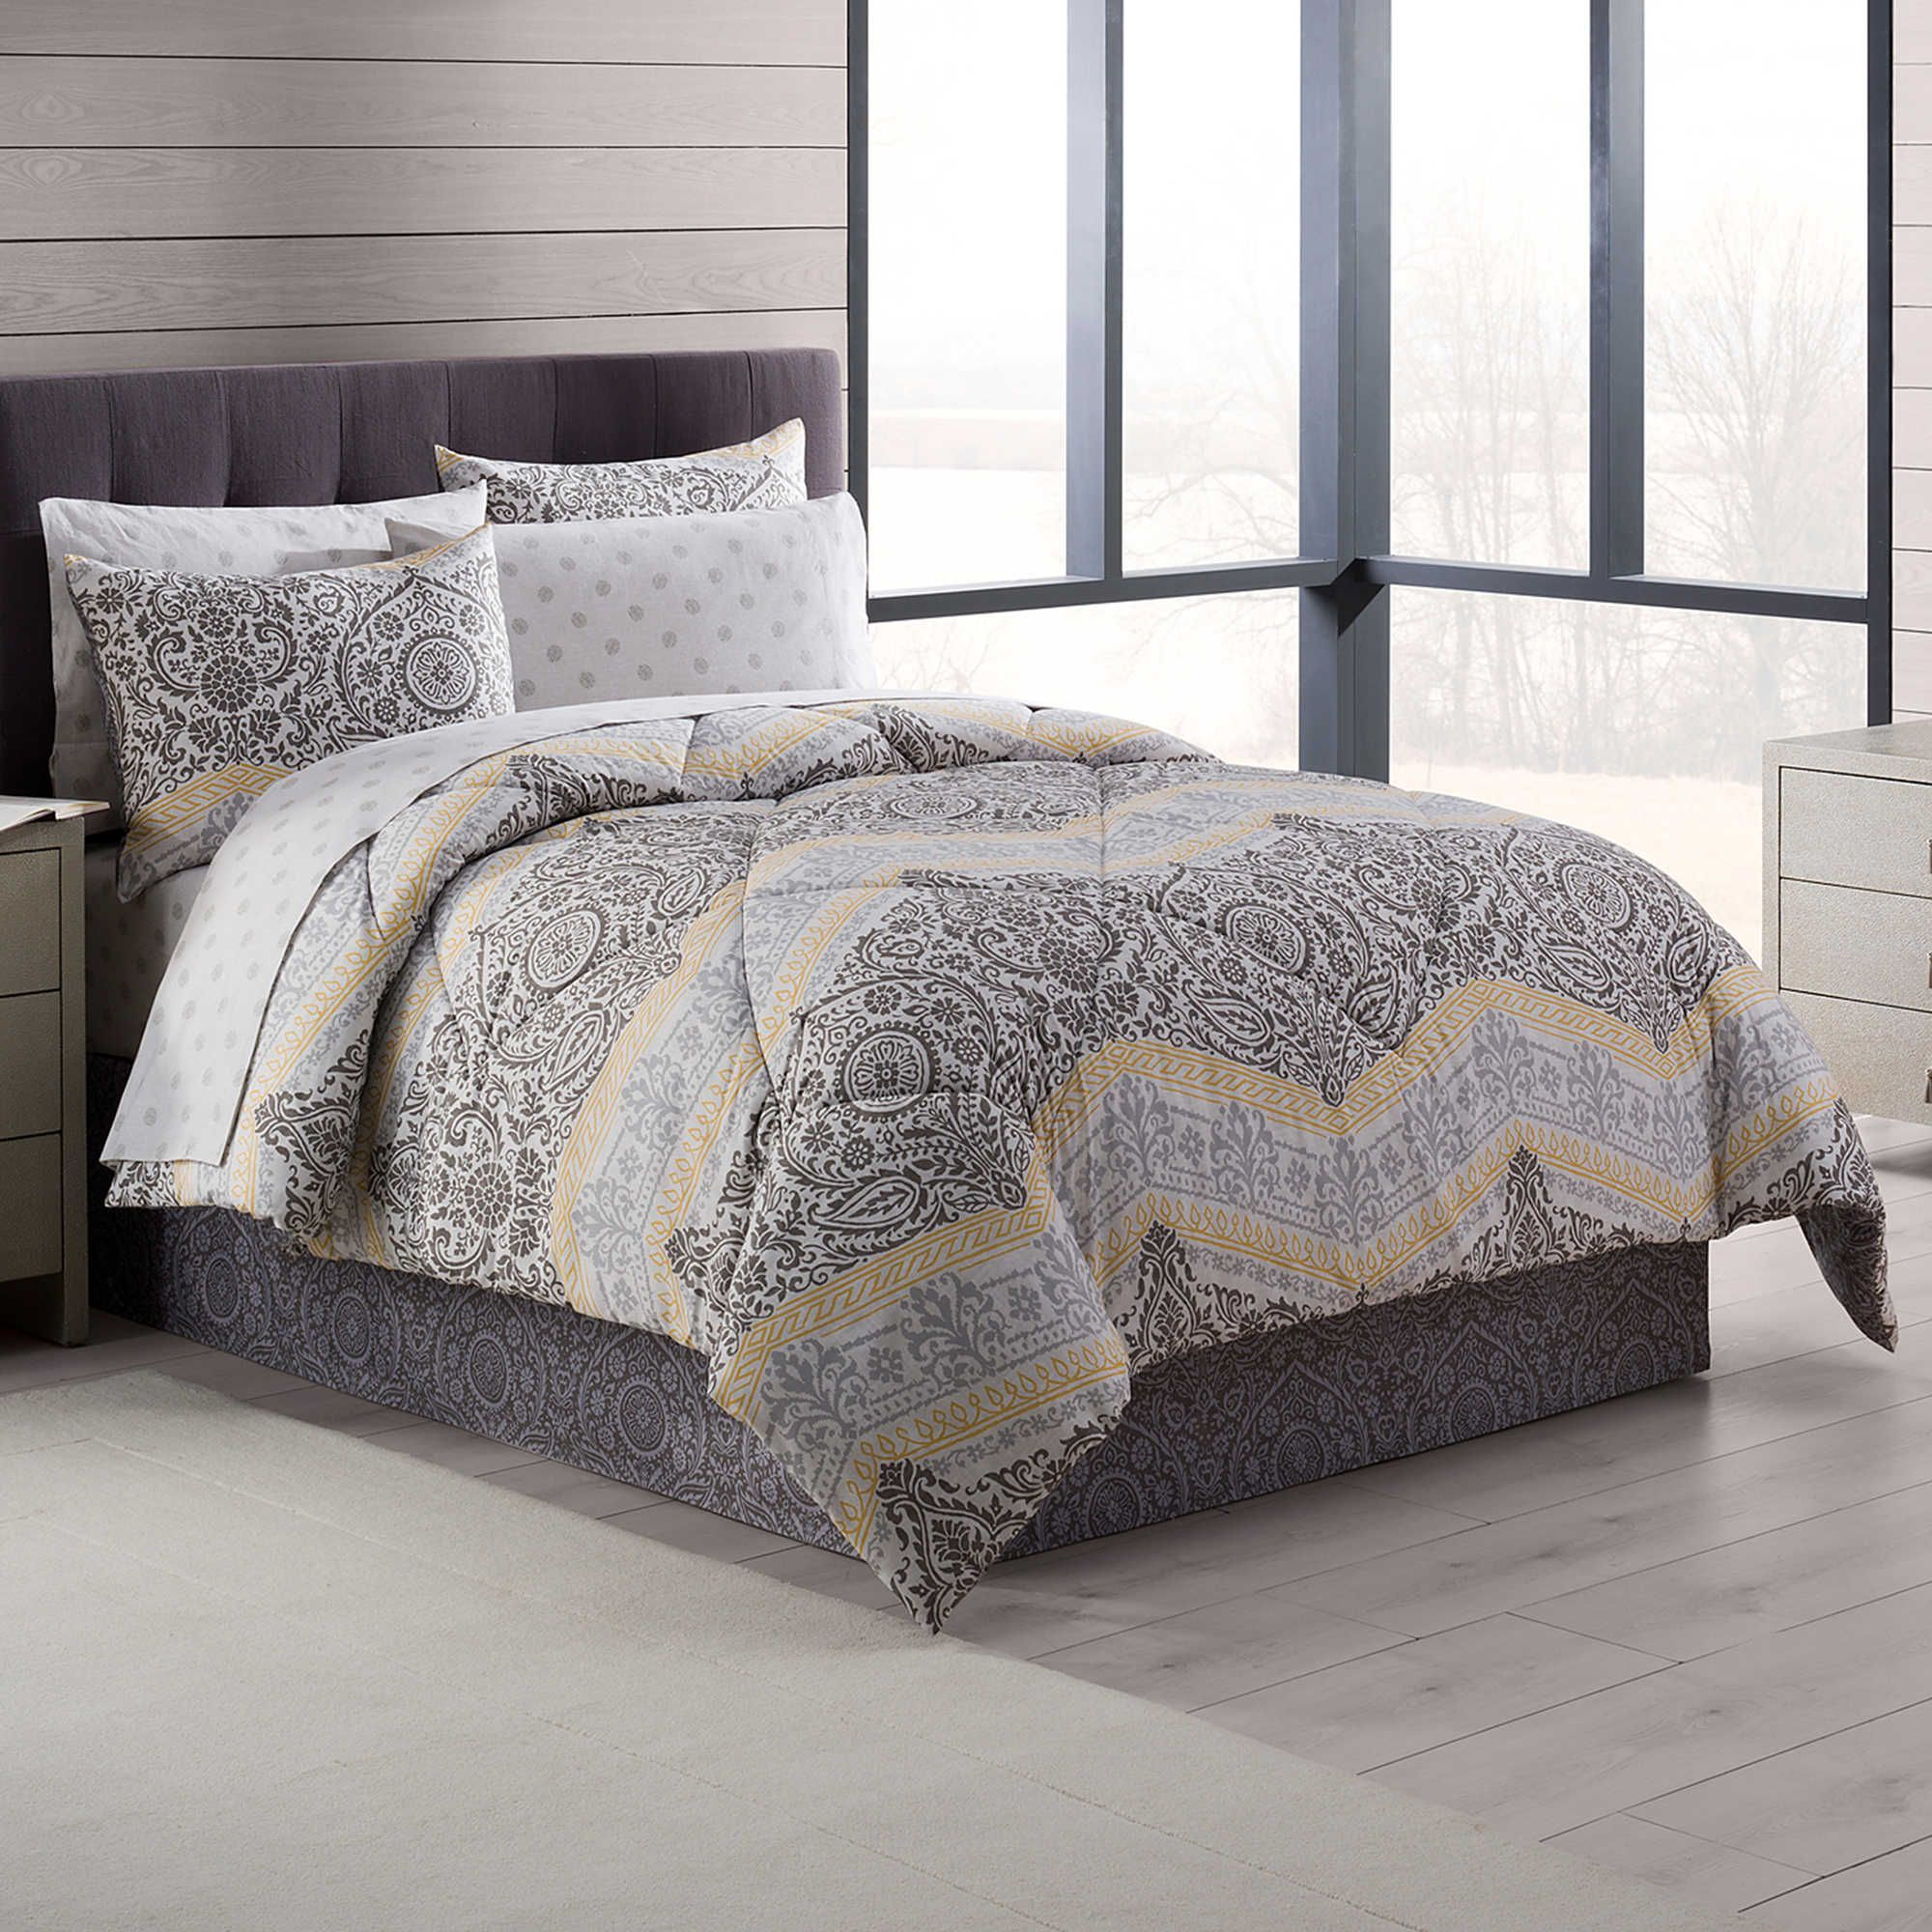 comforter vanegroo set yellow bed sheets queen bedding uk king grey info full and sets gray dark